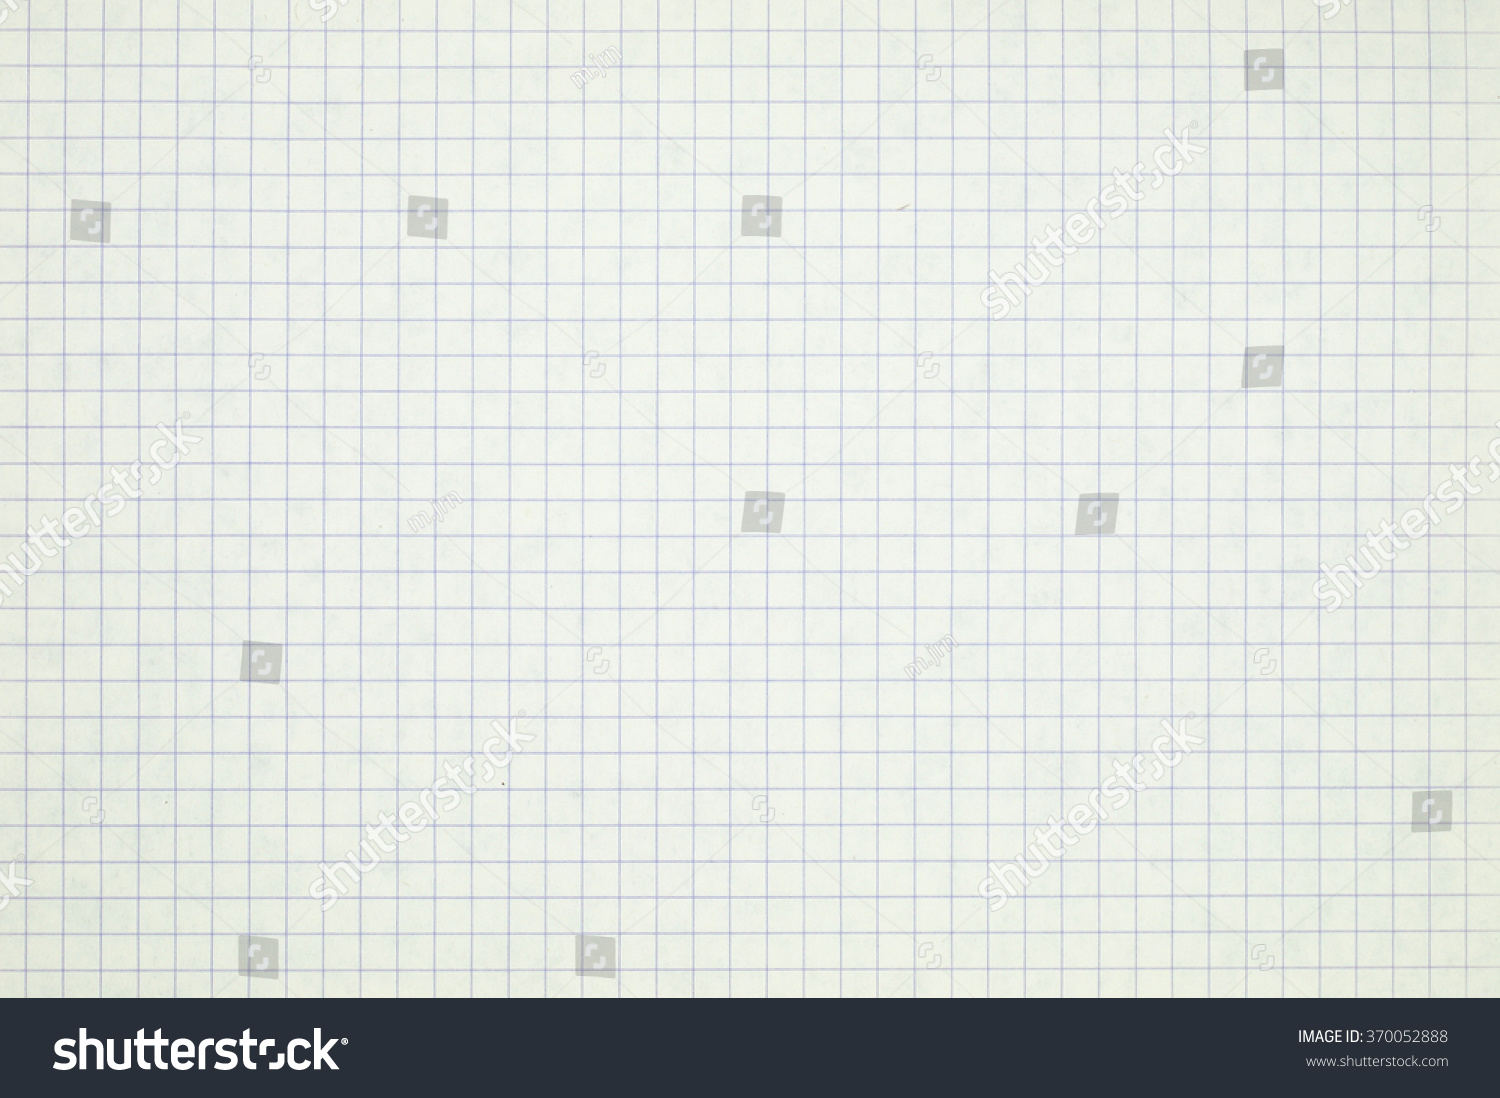 Grid Paper Background Stock Photo 370052888 Shutterstock